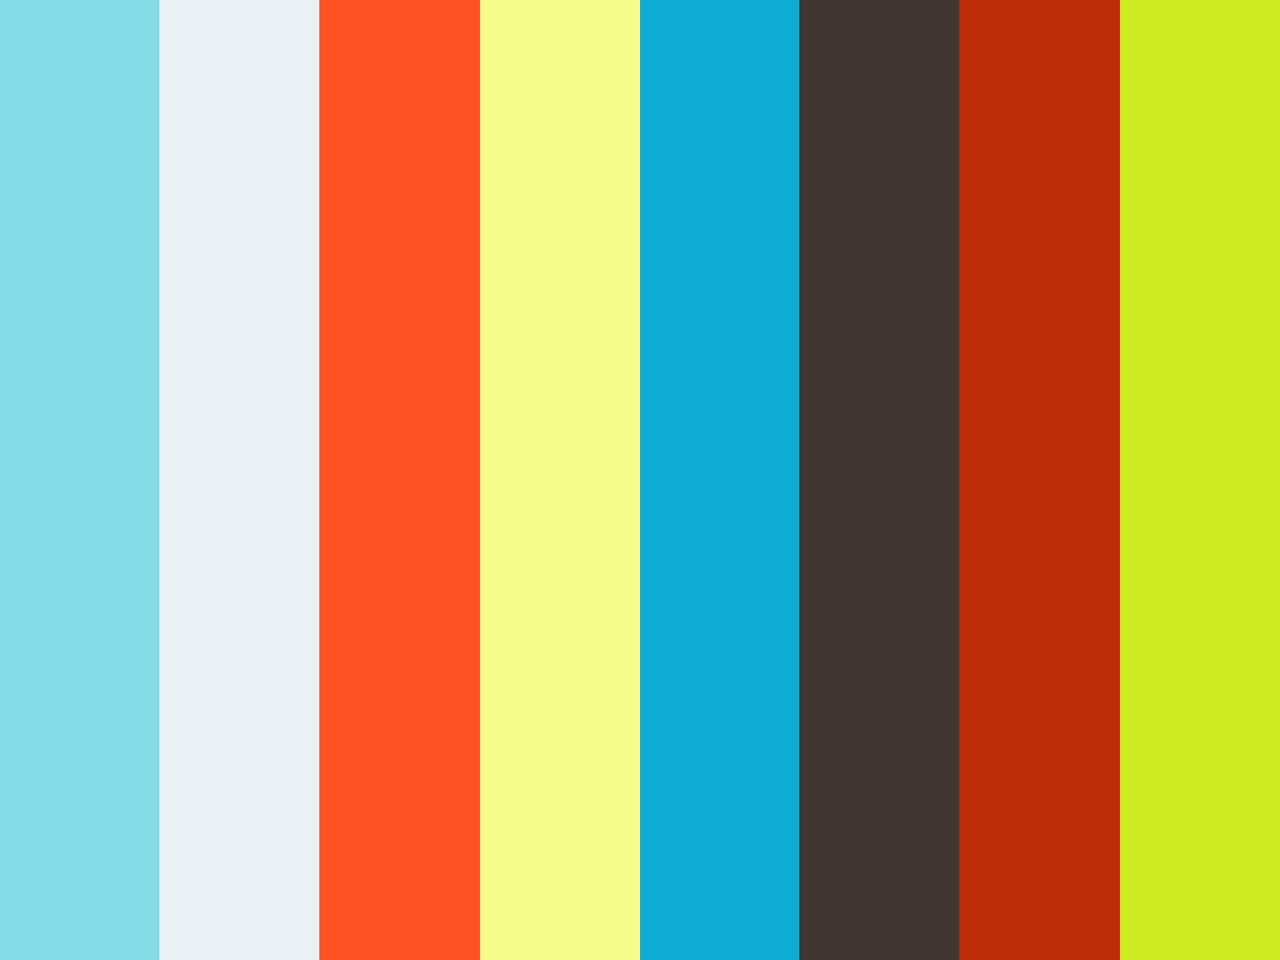 The Incidence of Malignant Conversion of Anal Dysplasia to Squamous Cell Carcinoma of the Anus 2017